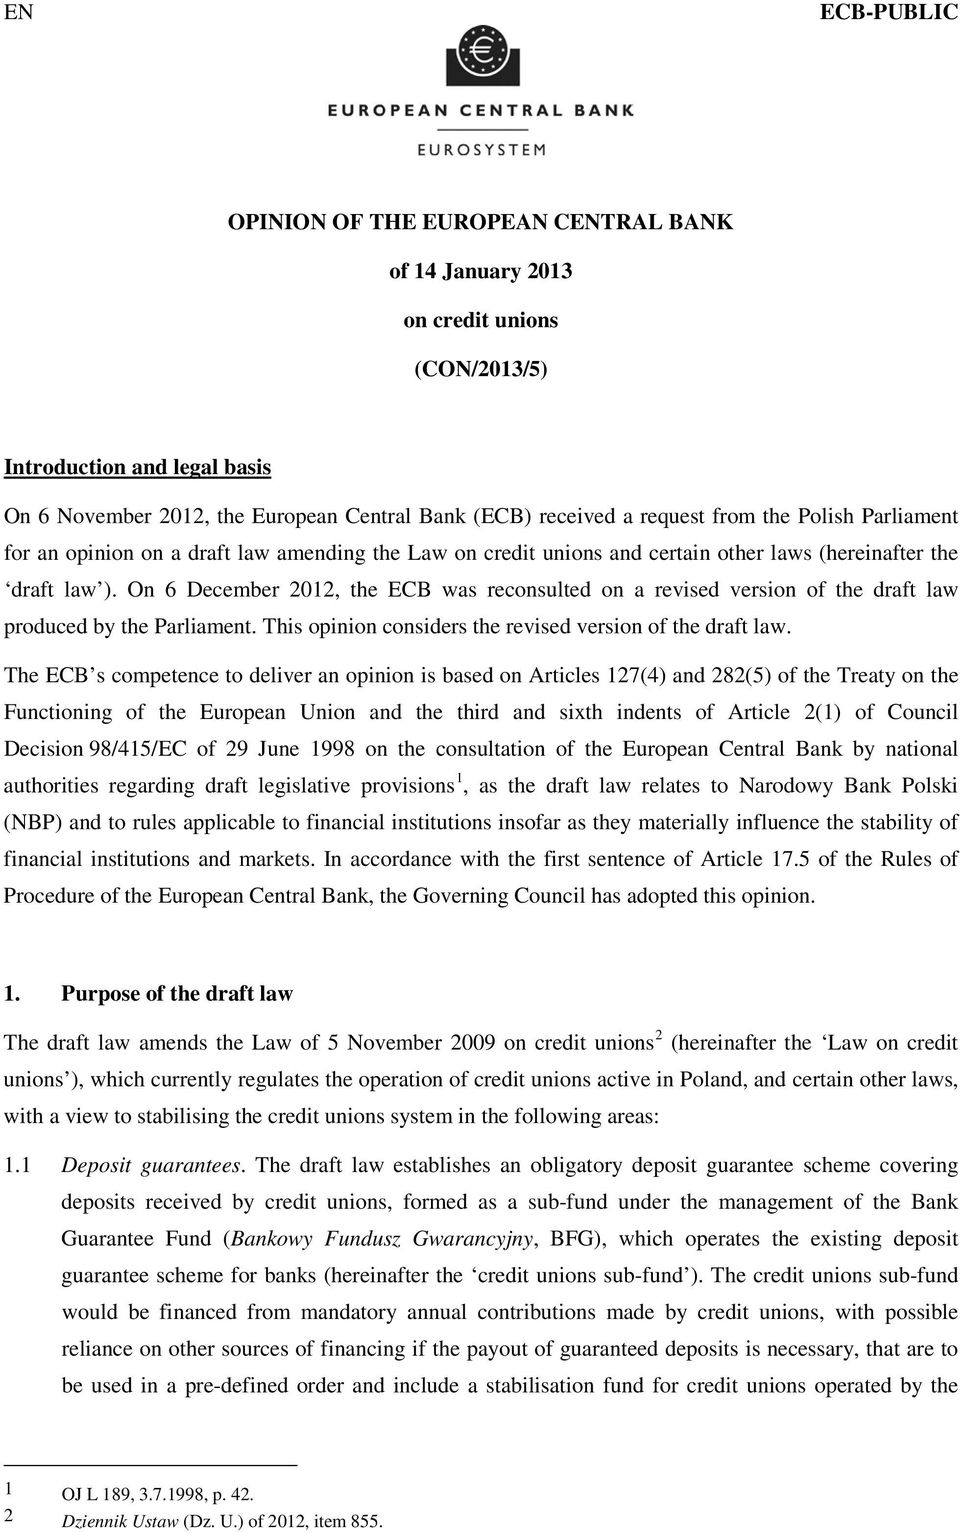 On 6 December 2012, the ECB was reconsulted on a revised version of the draft law produced by the Parliament. This opinion considers the revised version of the draft law.